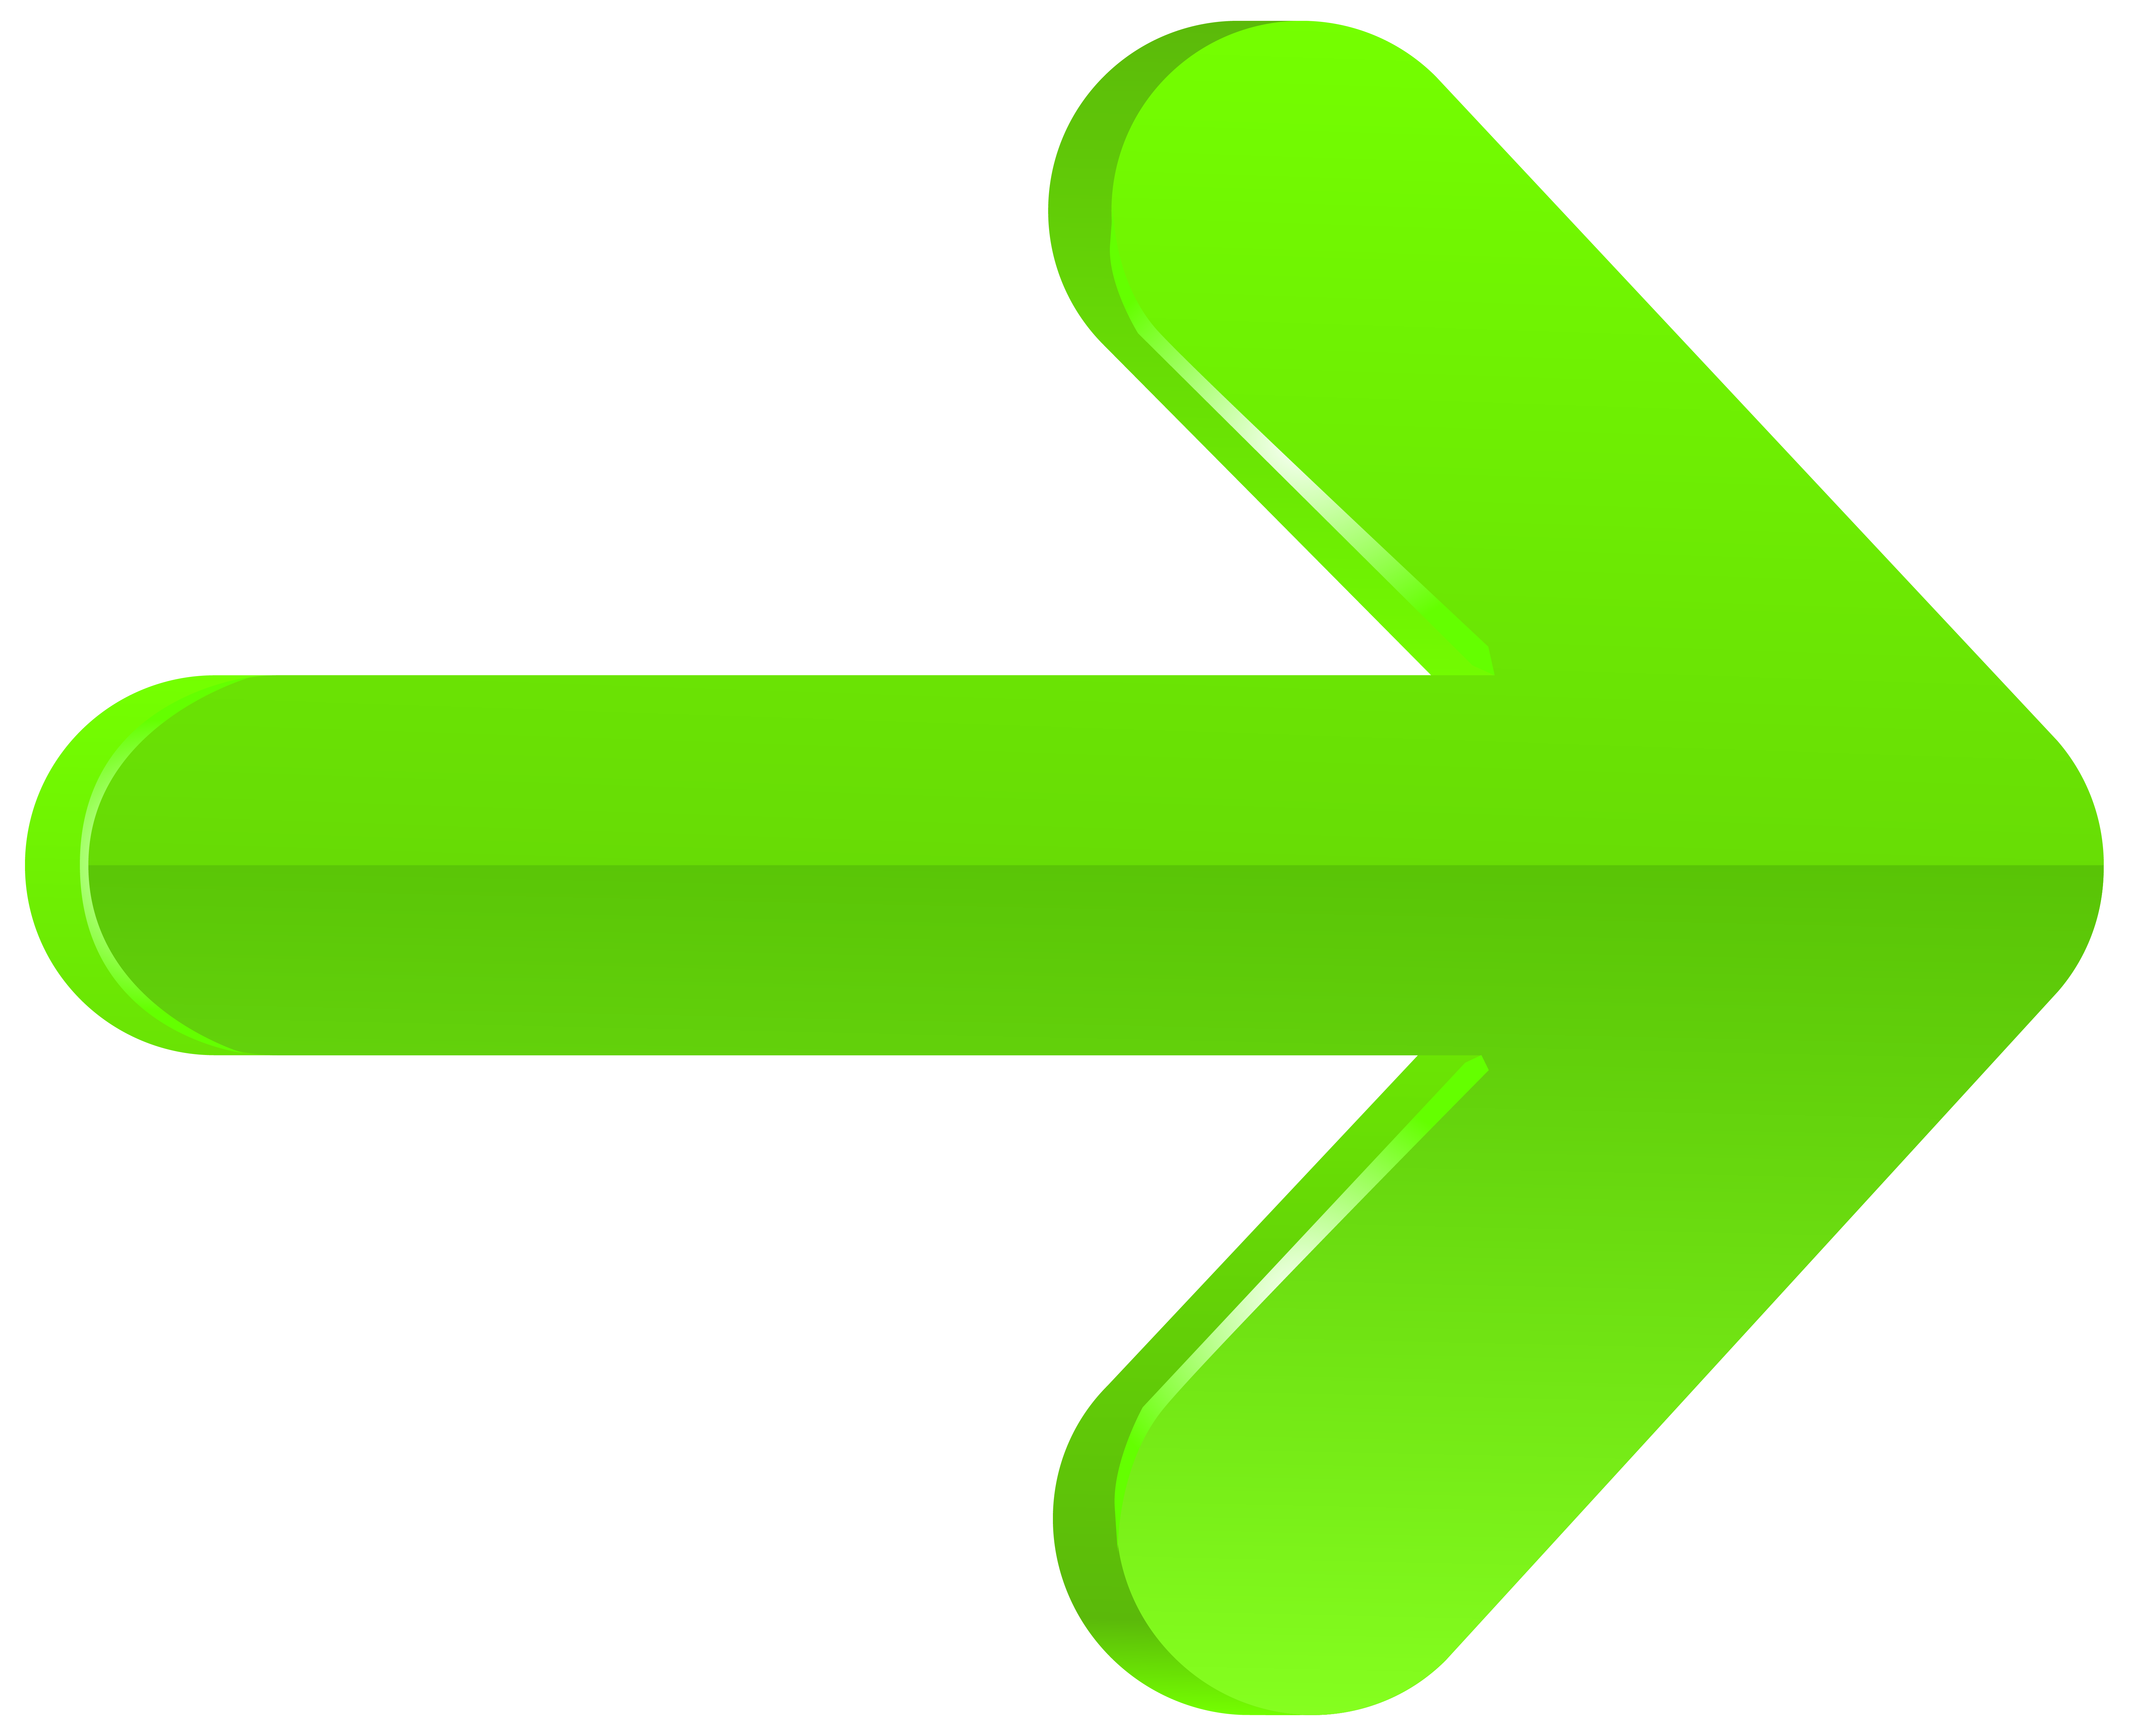 Green clipart at getdrawings. Arrow cliparts